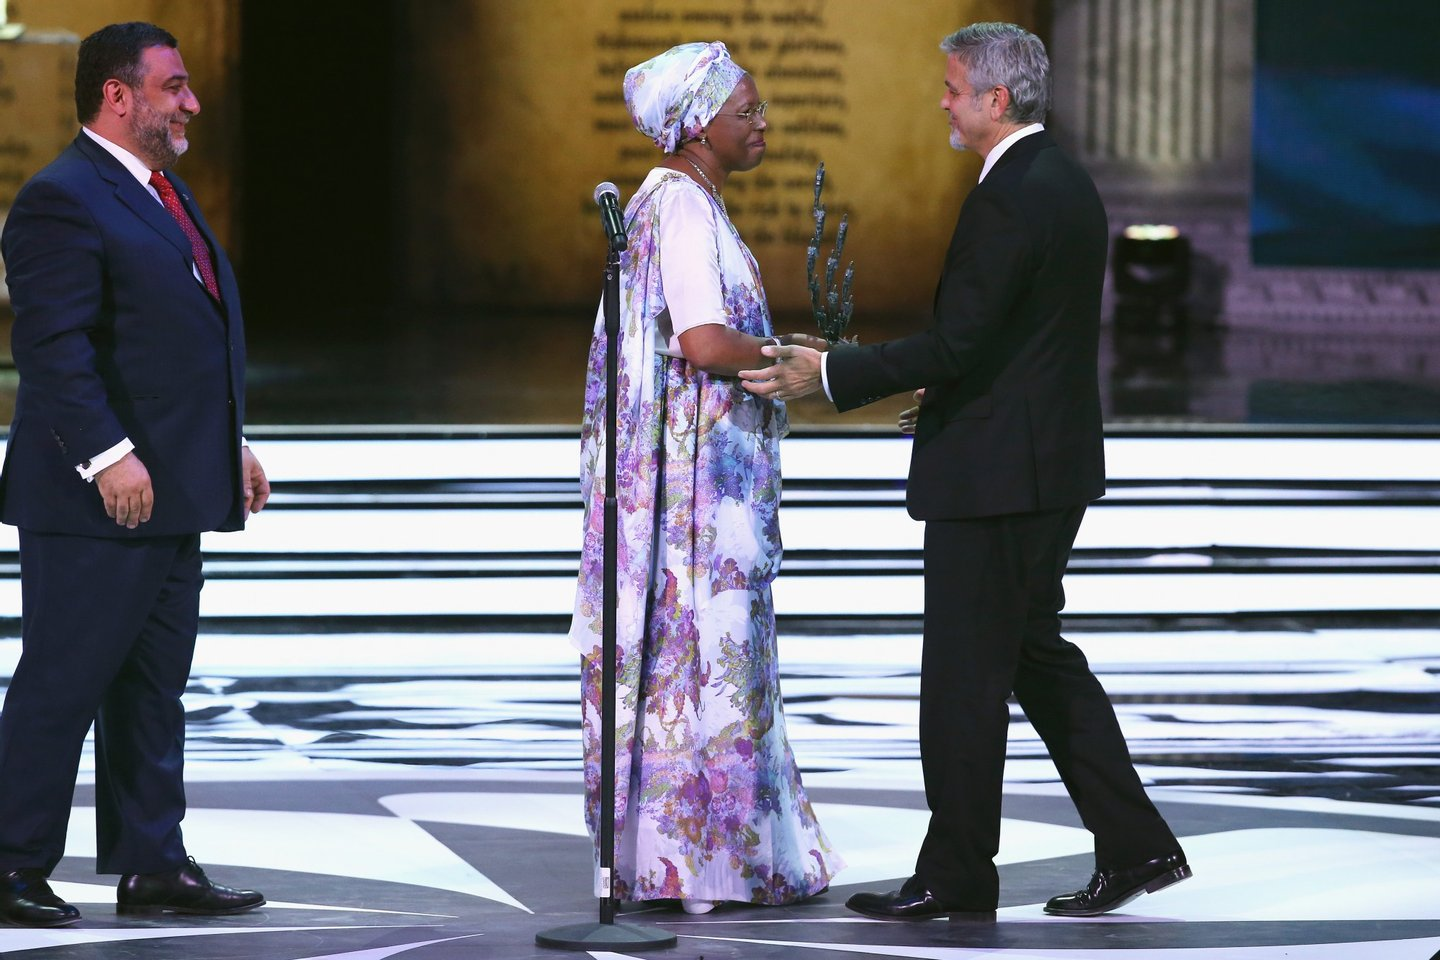 YEREVAN, ARMENIA - APRIL 24:  Aurora Prize Co-Founder Ruben Vardanyan, Aurora Prize finalist and Founder Maison Shalom, Marguerite Barankitse and Aurora Prize  Selection Committee Co-Chair George Clooney on April 24, 2016 in Yerevan, Armenia.  (Photo by Andreas Rentz/Getty Images for 100 Lives)